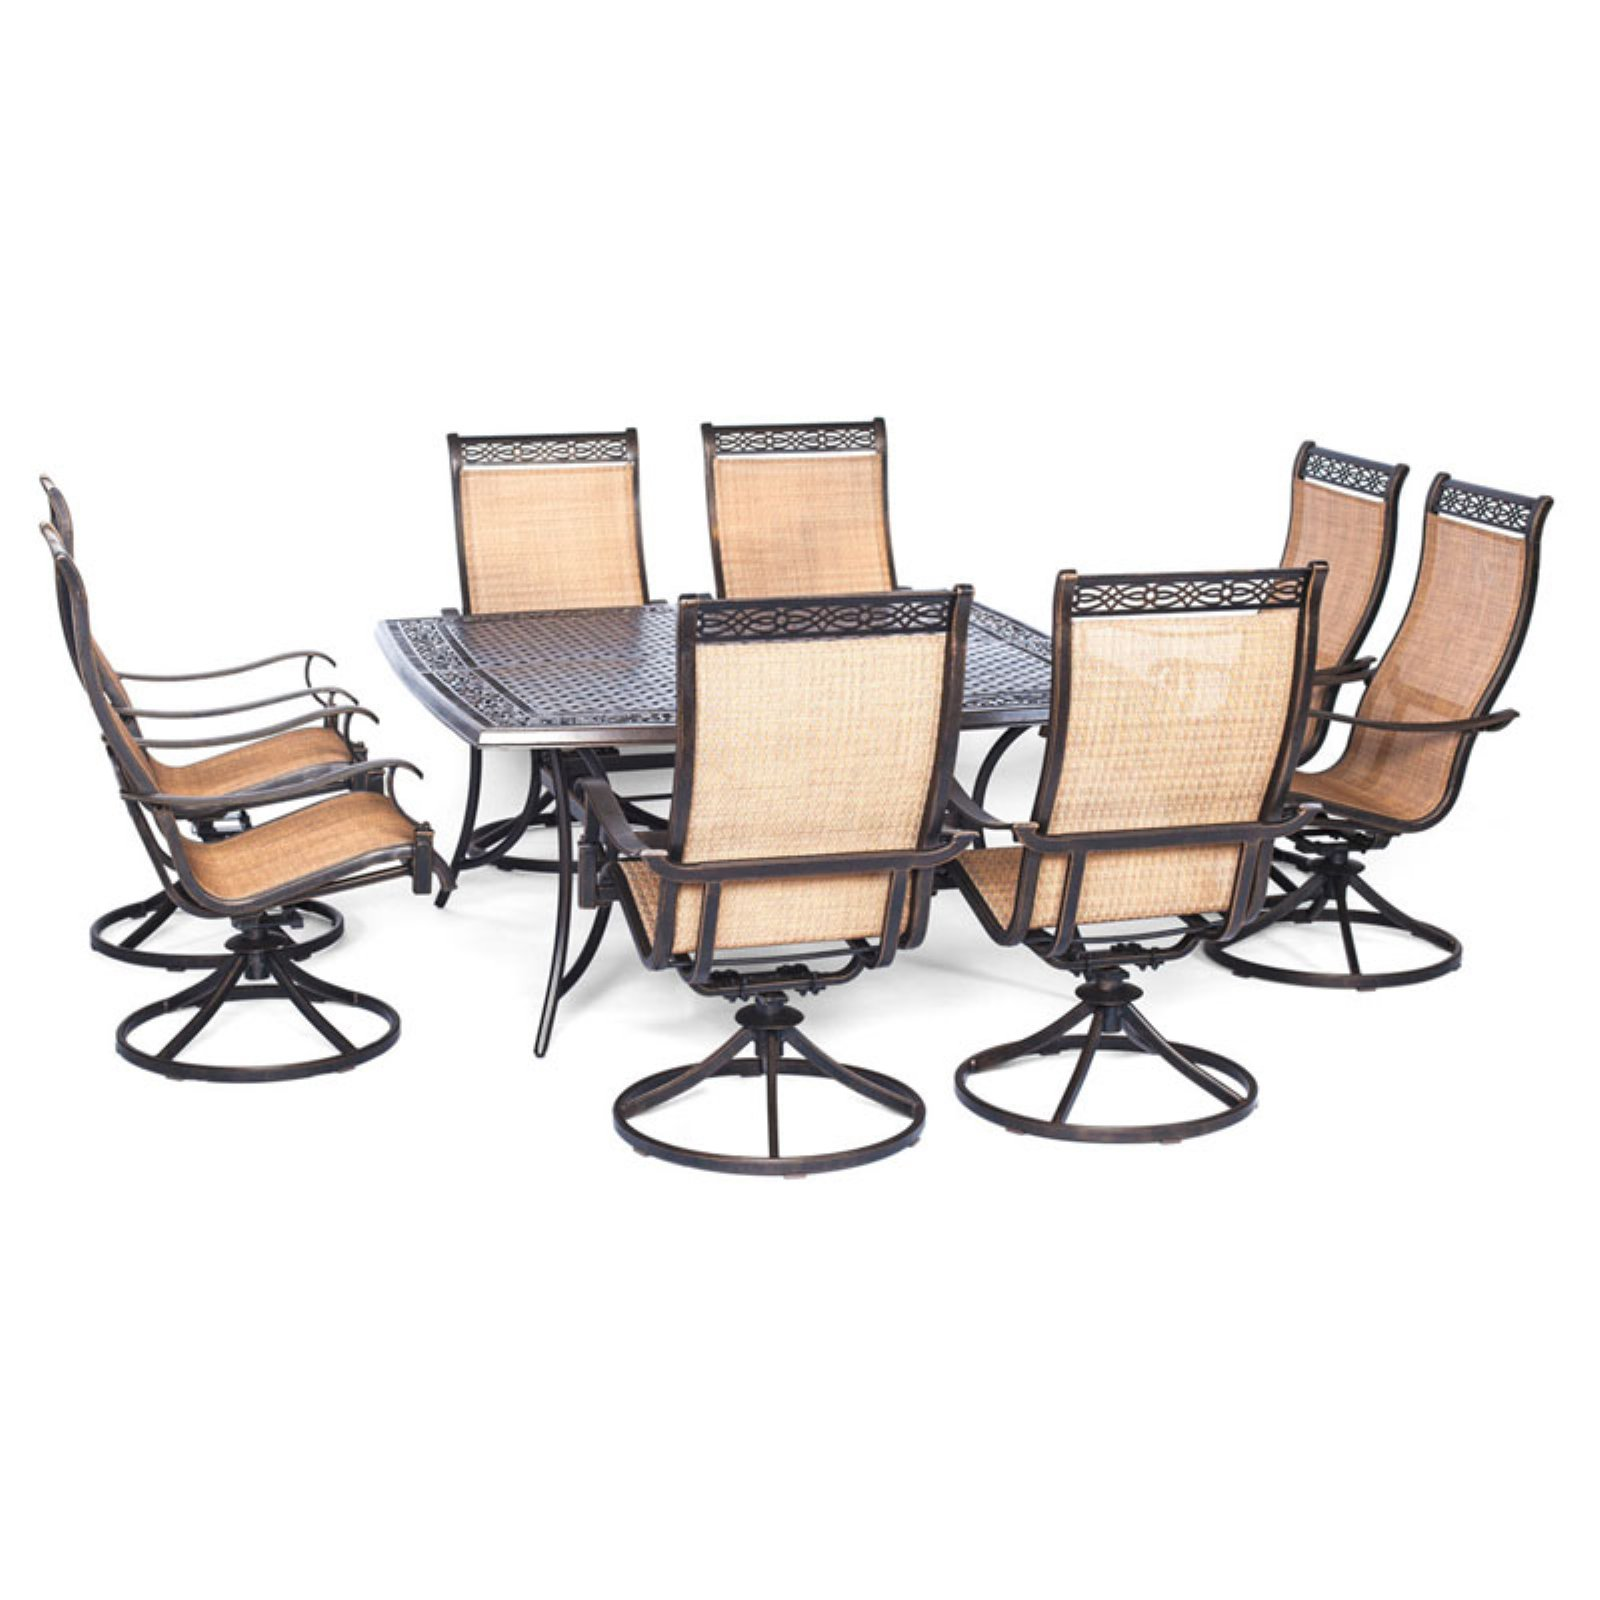 Hanover Outdoor Manor 9 Piece Outdoor Dining Set With Large Square Table  And 8 Swivel